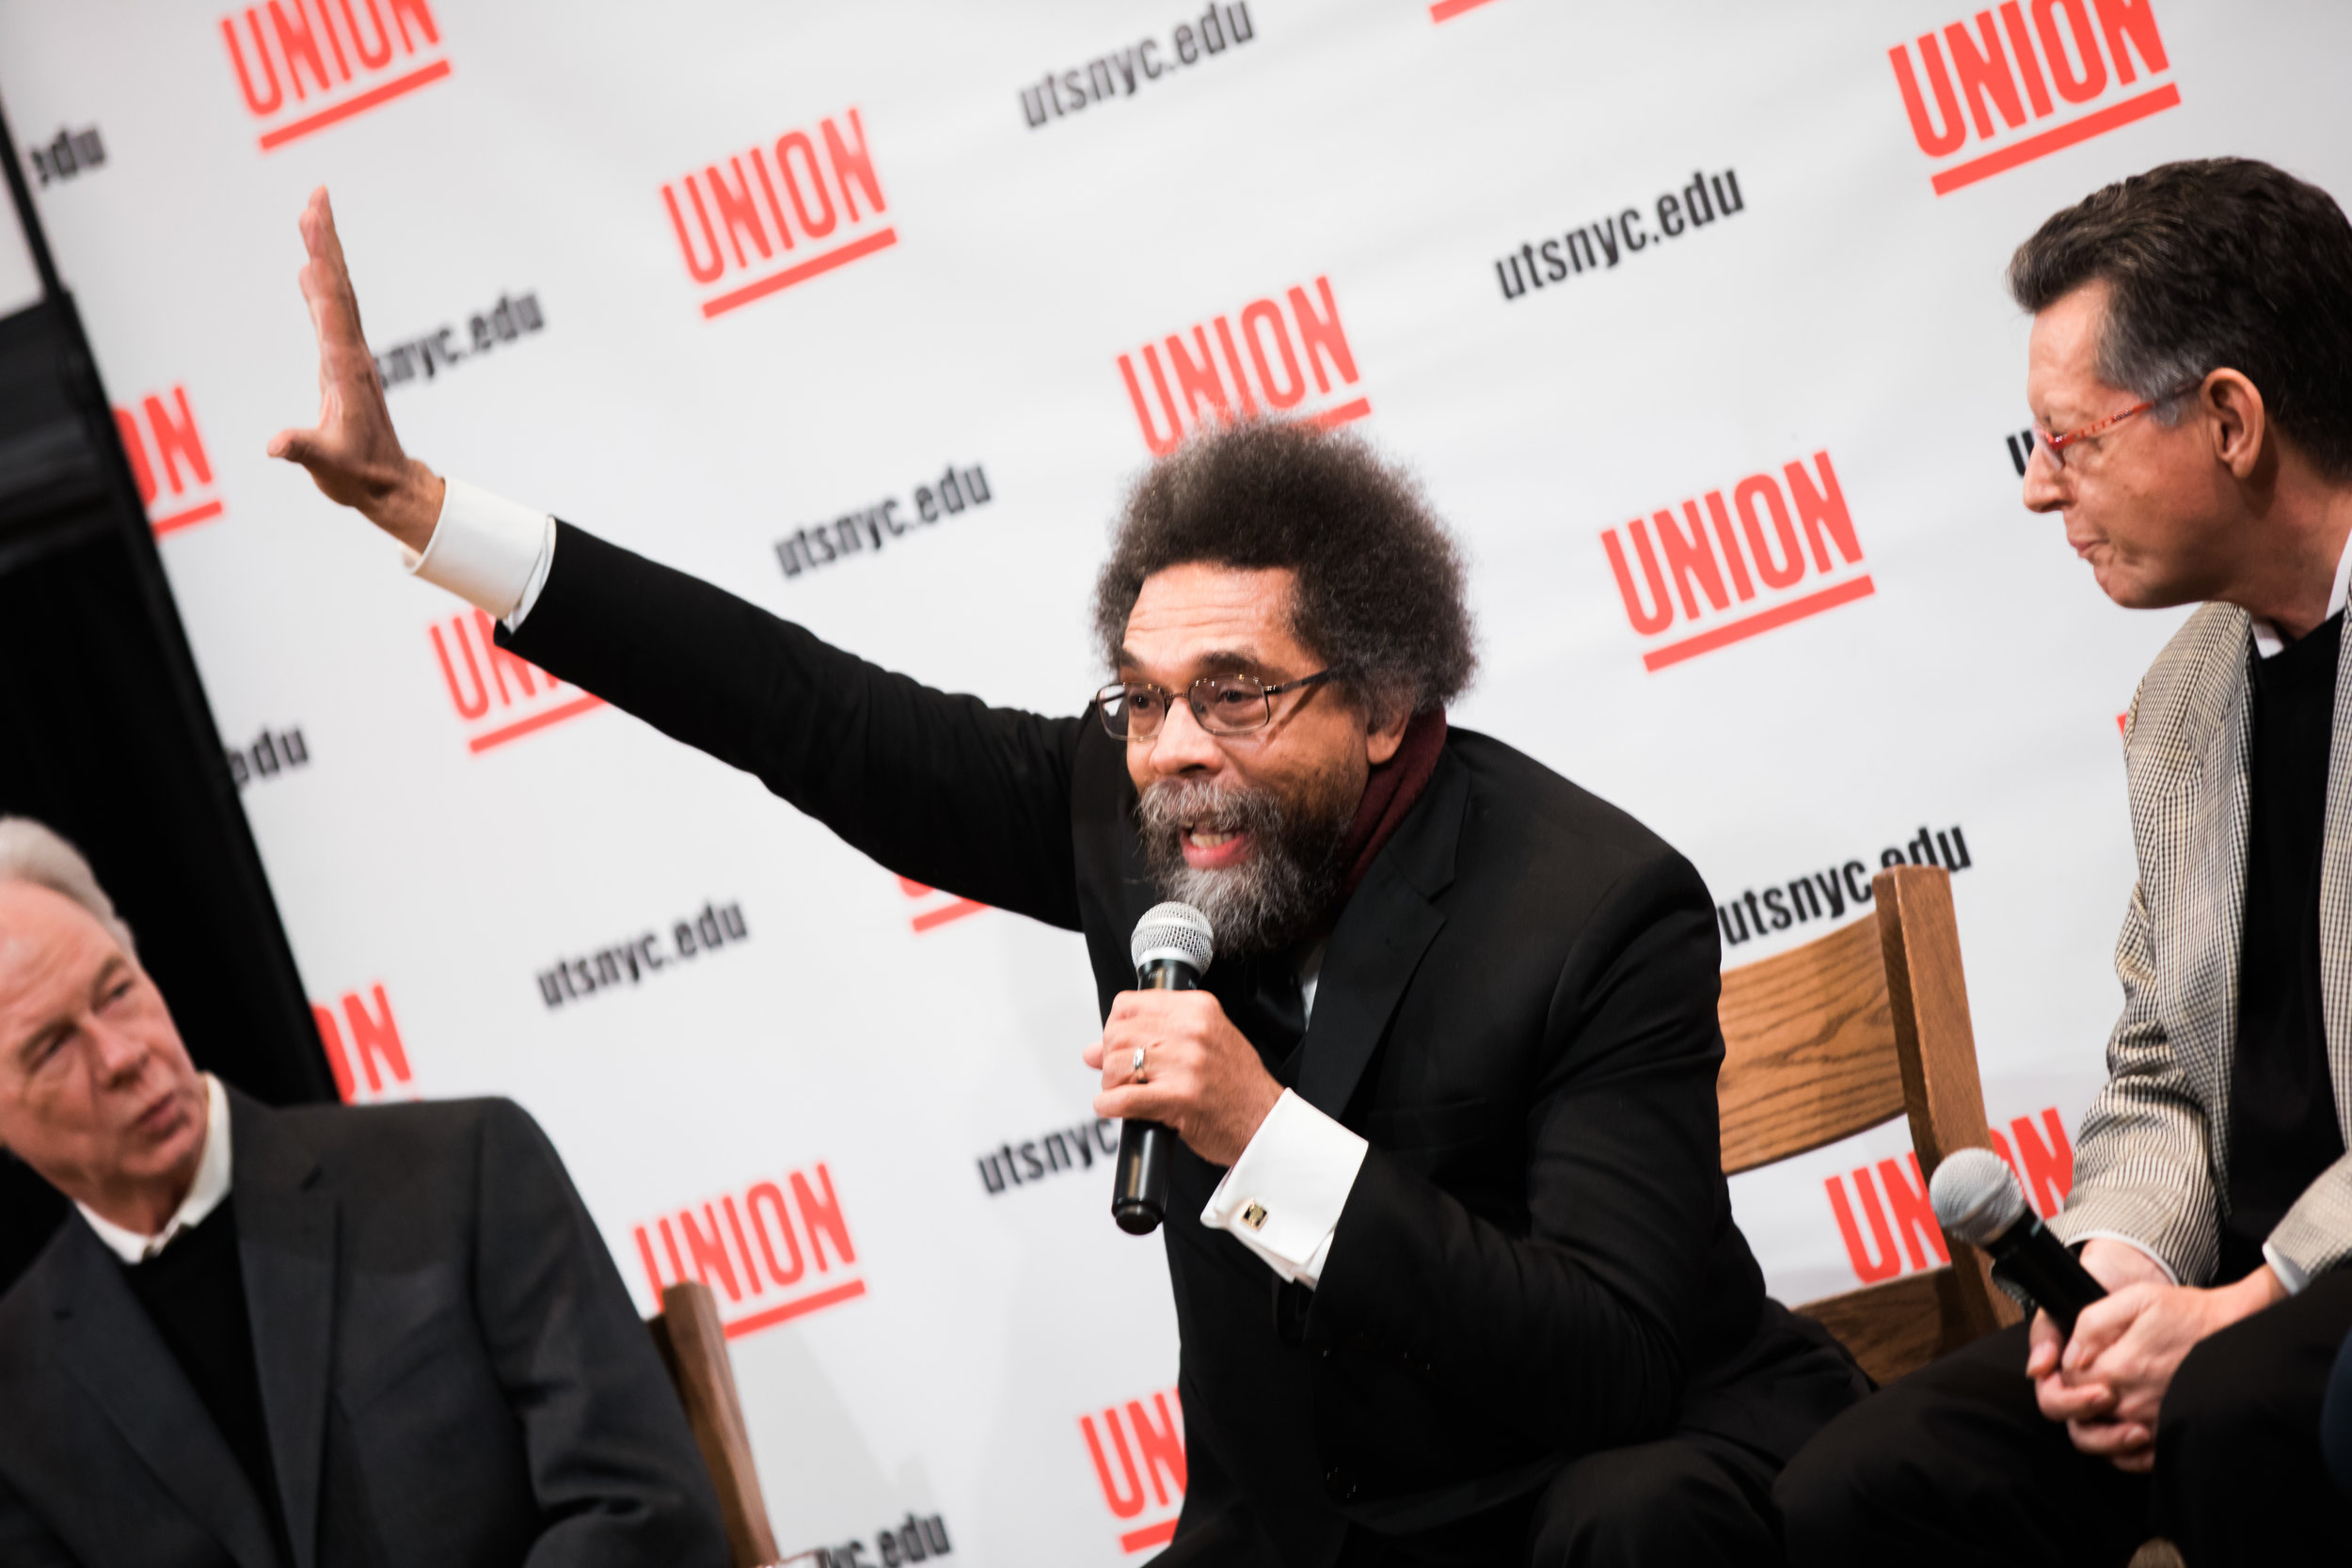 Cornell West speaks at an event at Union Theological Seminary in New York, NY. Photo by Daniel Lee.